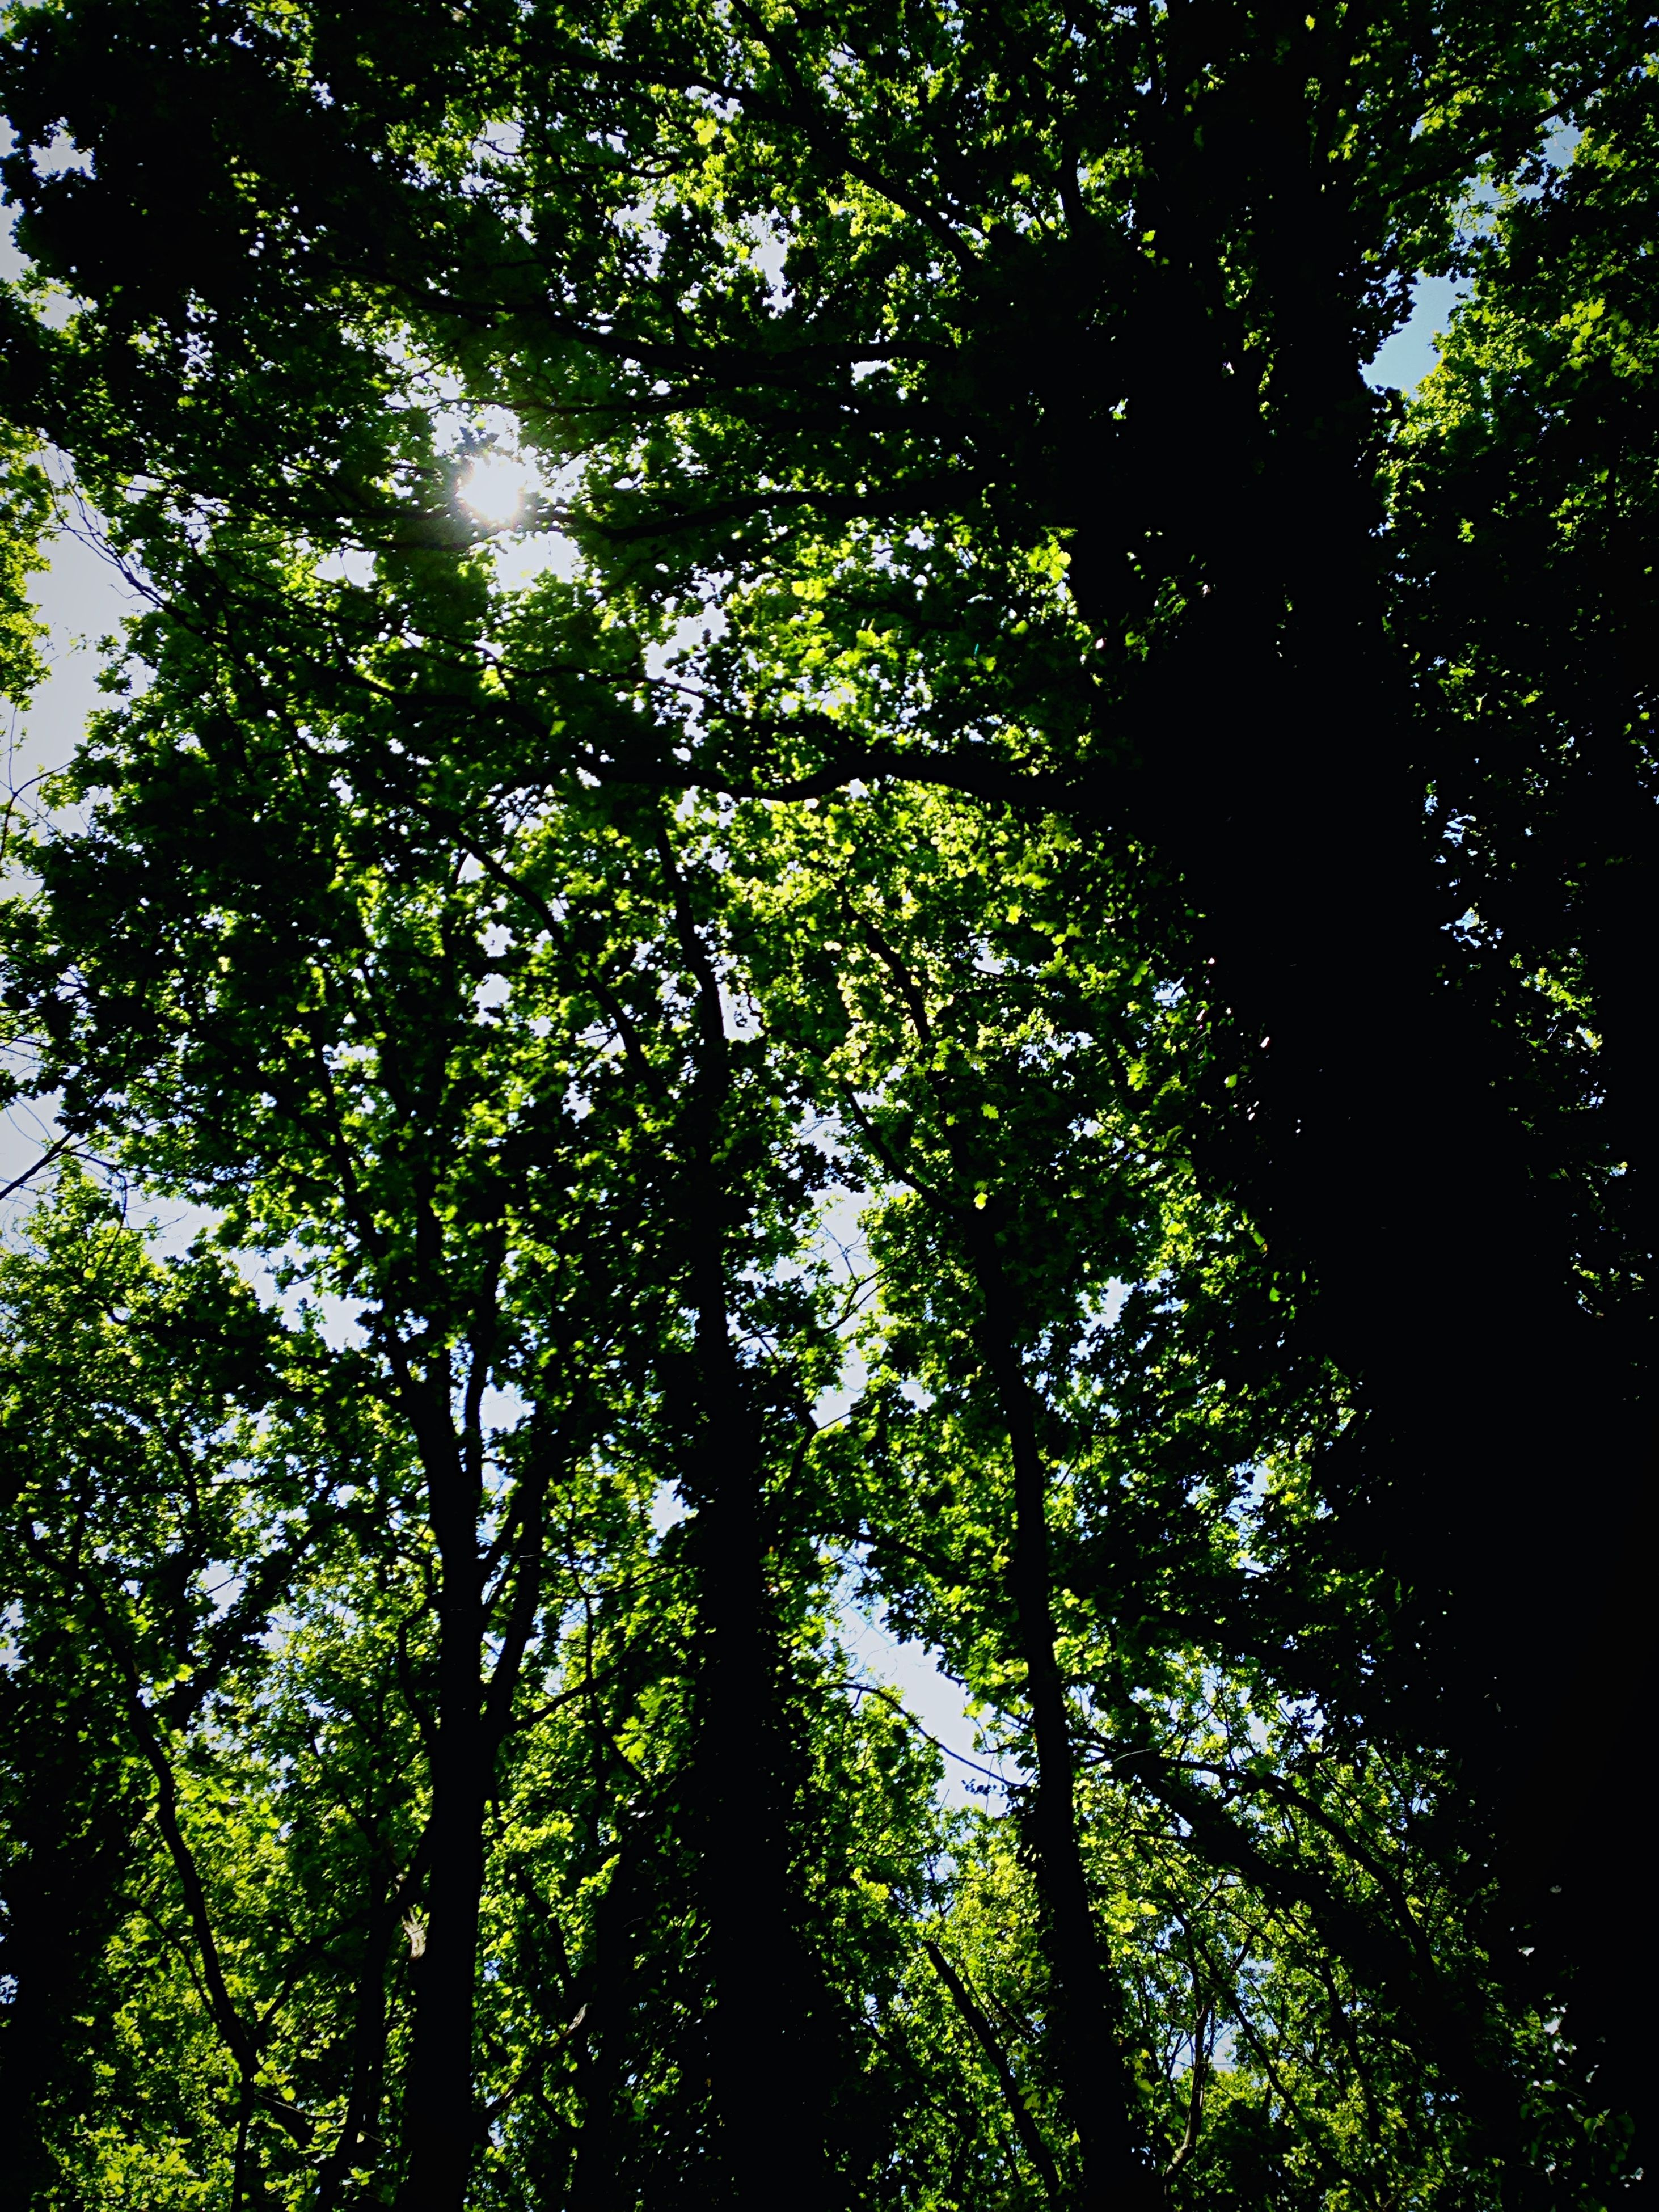 tree, low angle view, growth, branch, tranquility, forest, nature, green color, beauty in nature, lush foliage, tranquil scene, scenics, tree trunk, woodland, outdoors, backgrounds, day, no people, full frame, sky